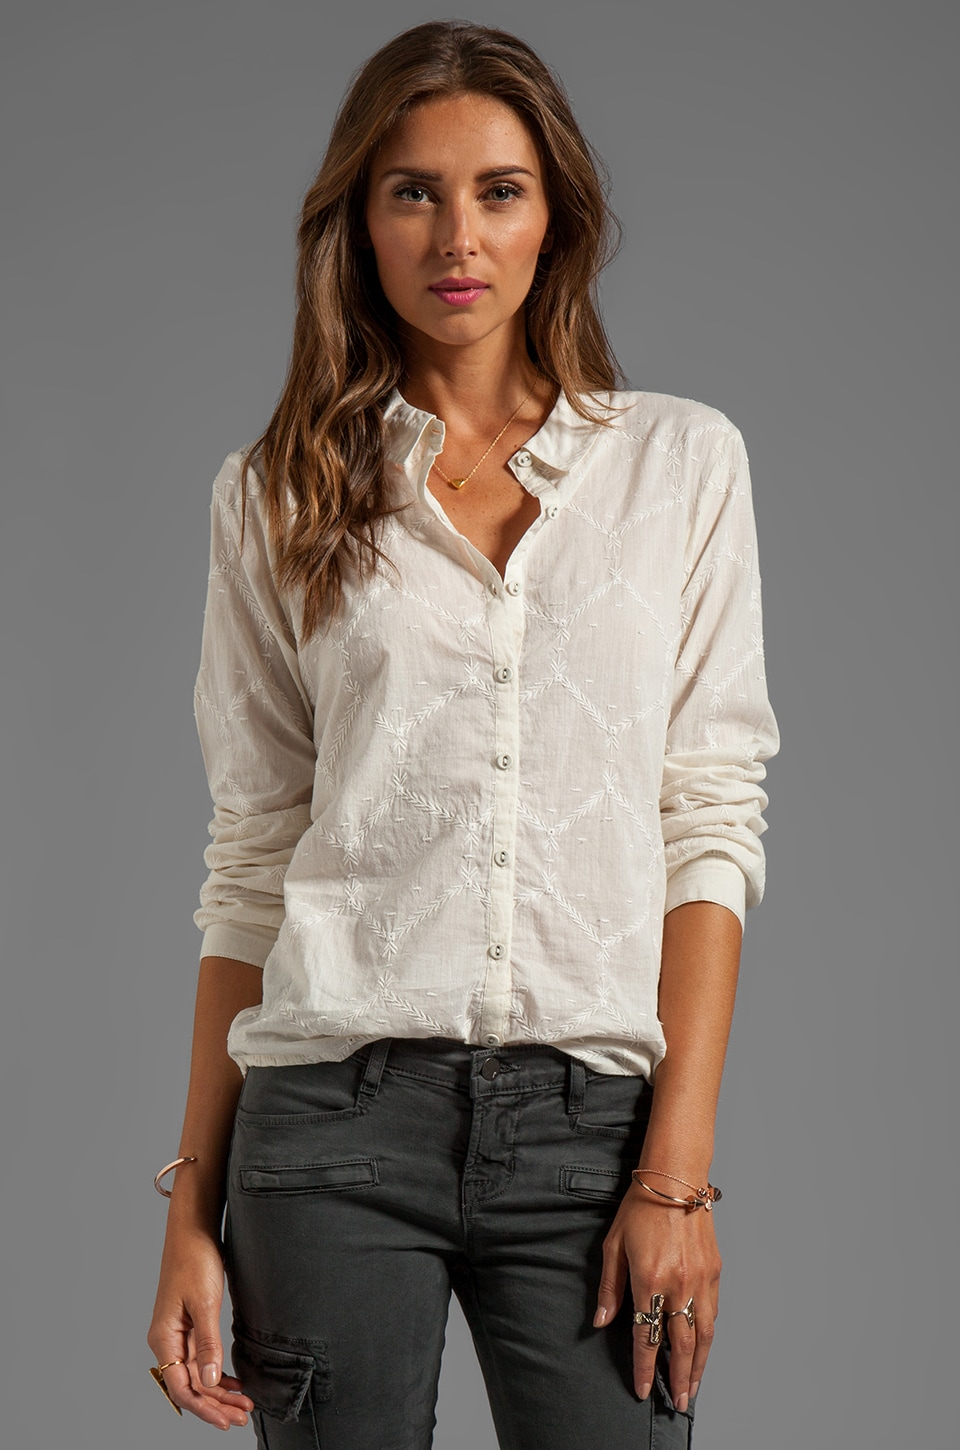 Beyond Vintage All Over Embroidered Blouse in Ivory